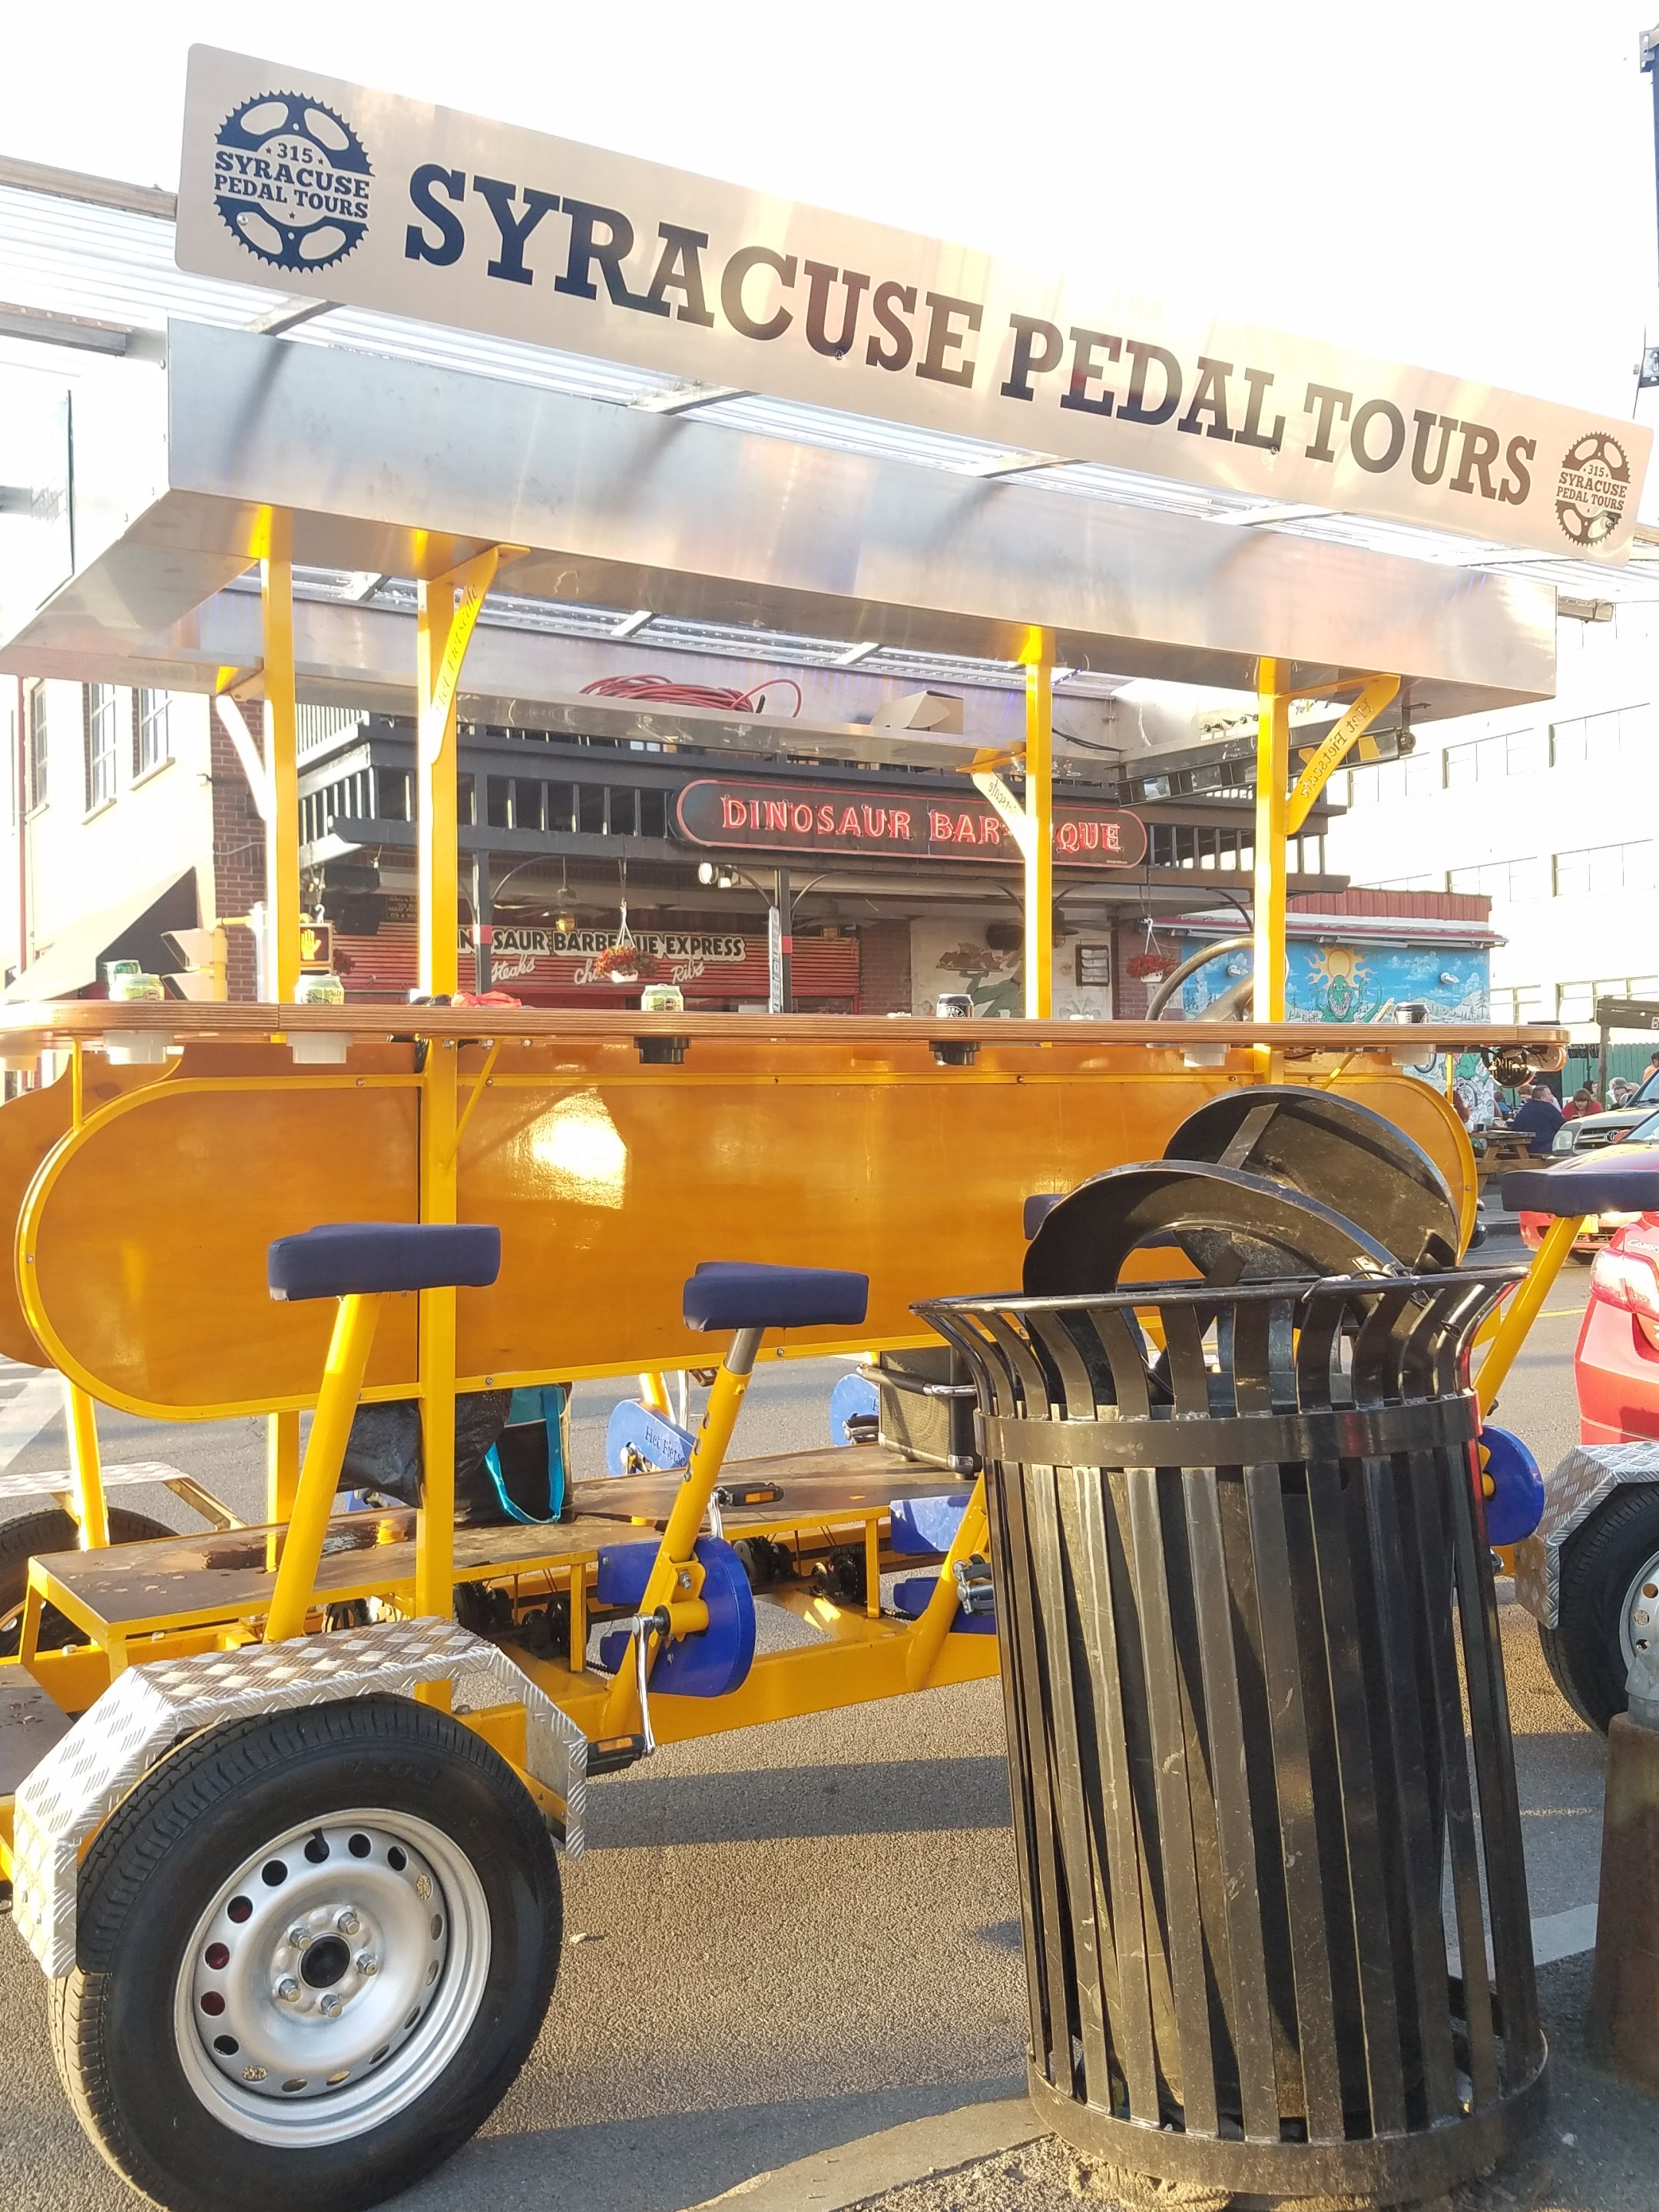 Syracuse Pedal Tours bike outside of Dinosaur Barbeque